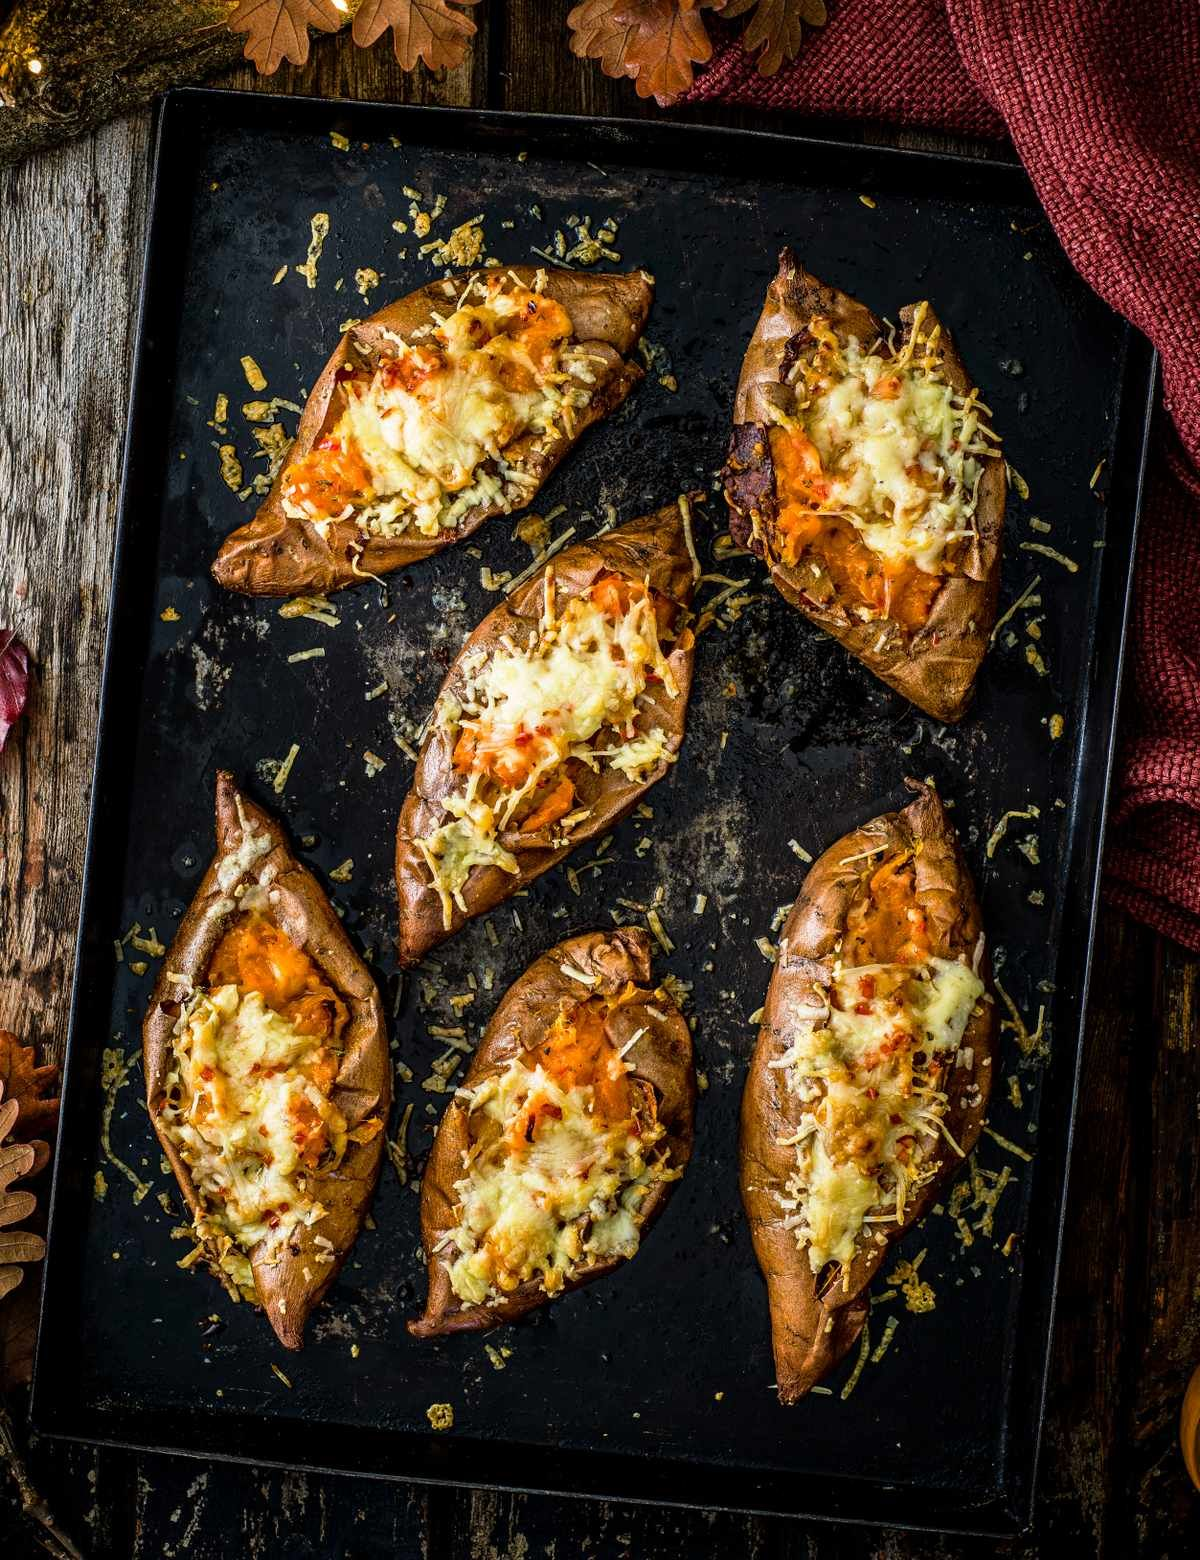 Sweet potato melts with rosemary, garlic and chilli #bonfirenightfood